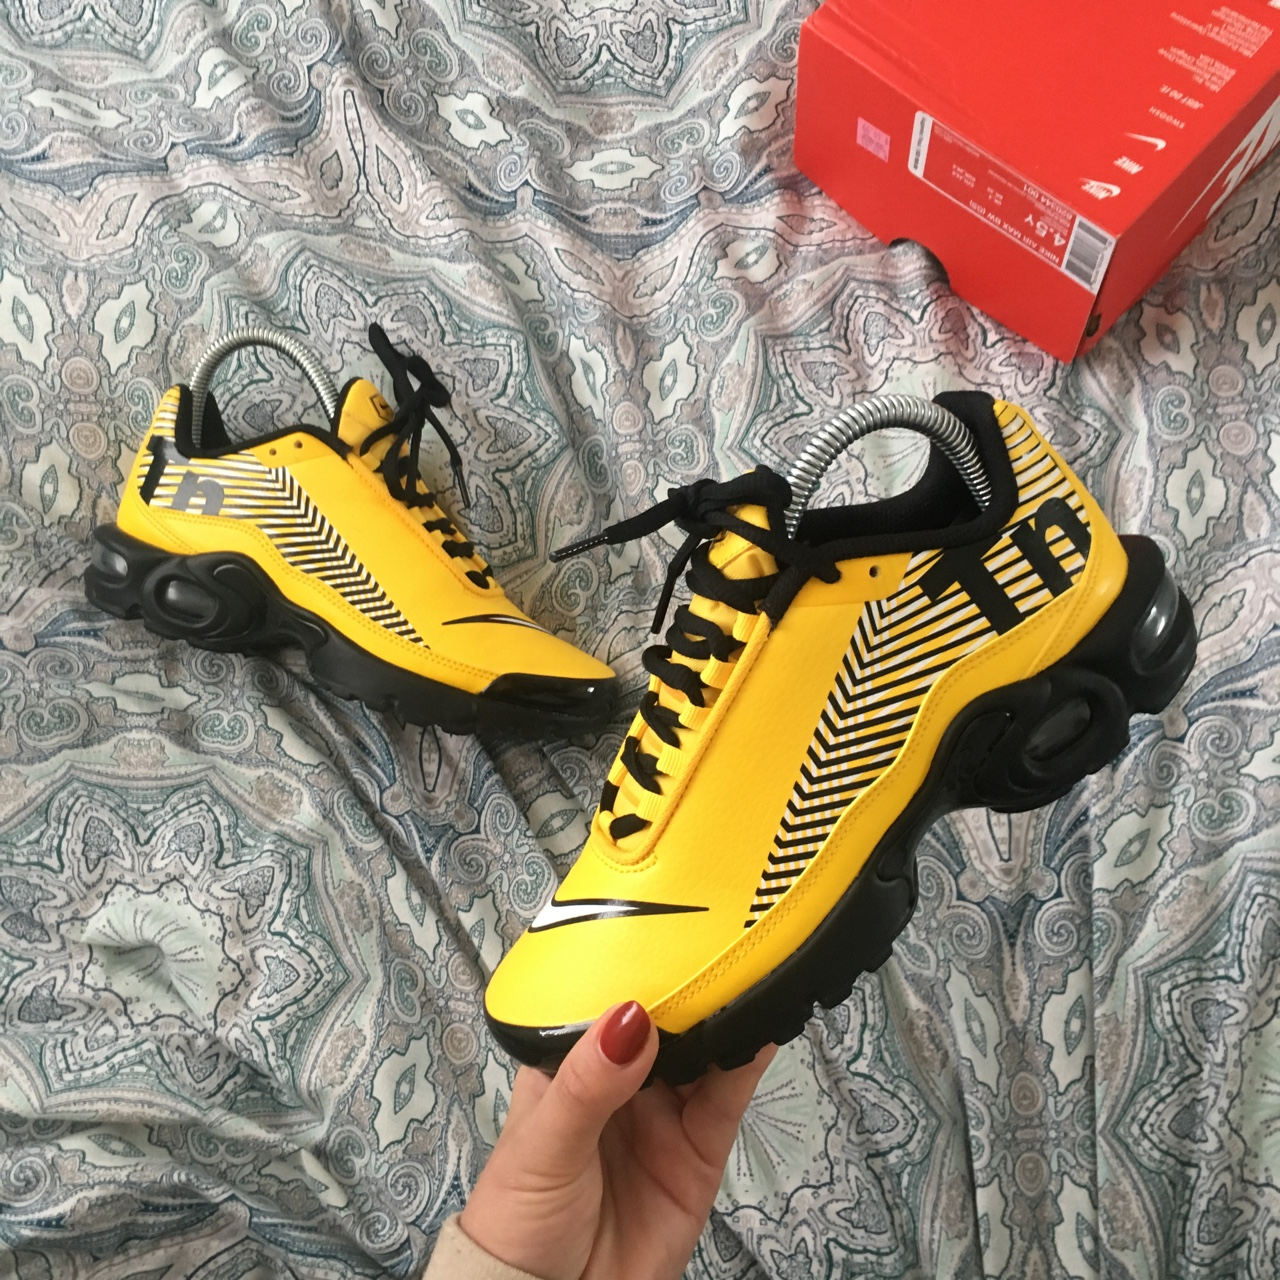 size 40 f8faf 169fb Nike Tuned 1 Mercurial Yellow and Black, only worn a... - Depop